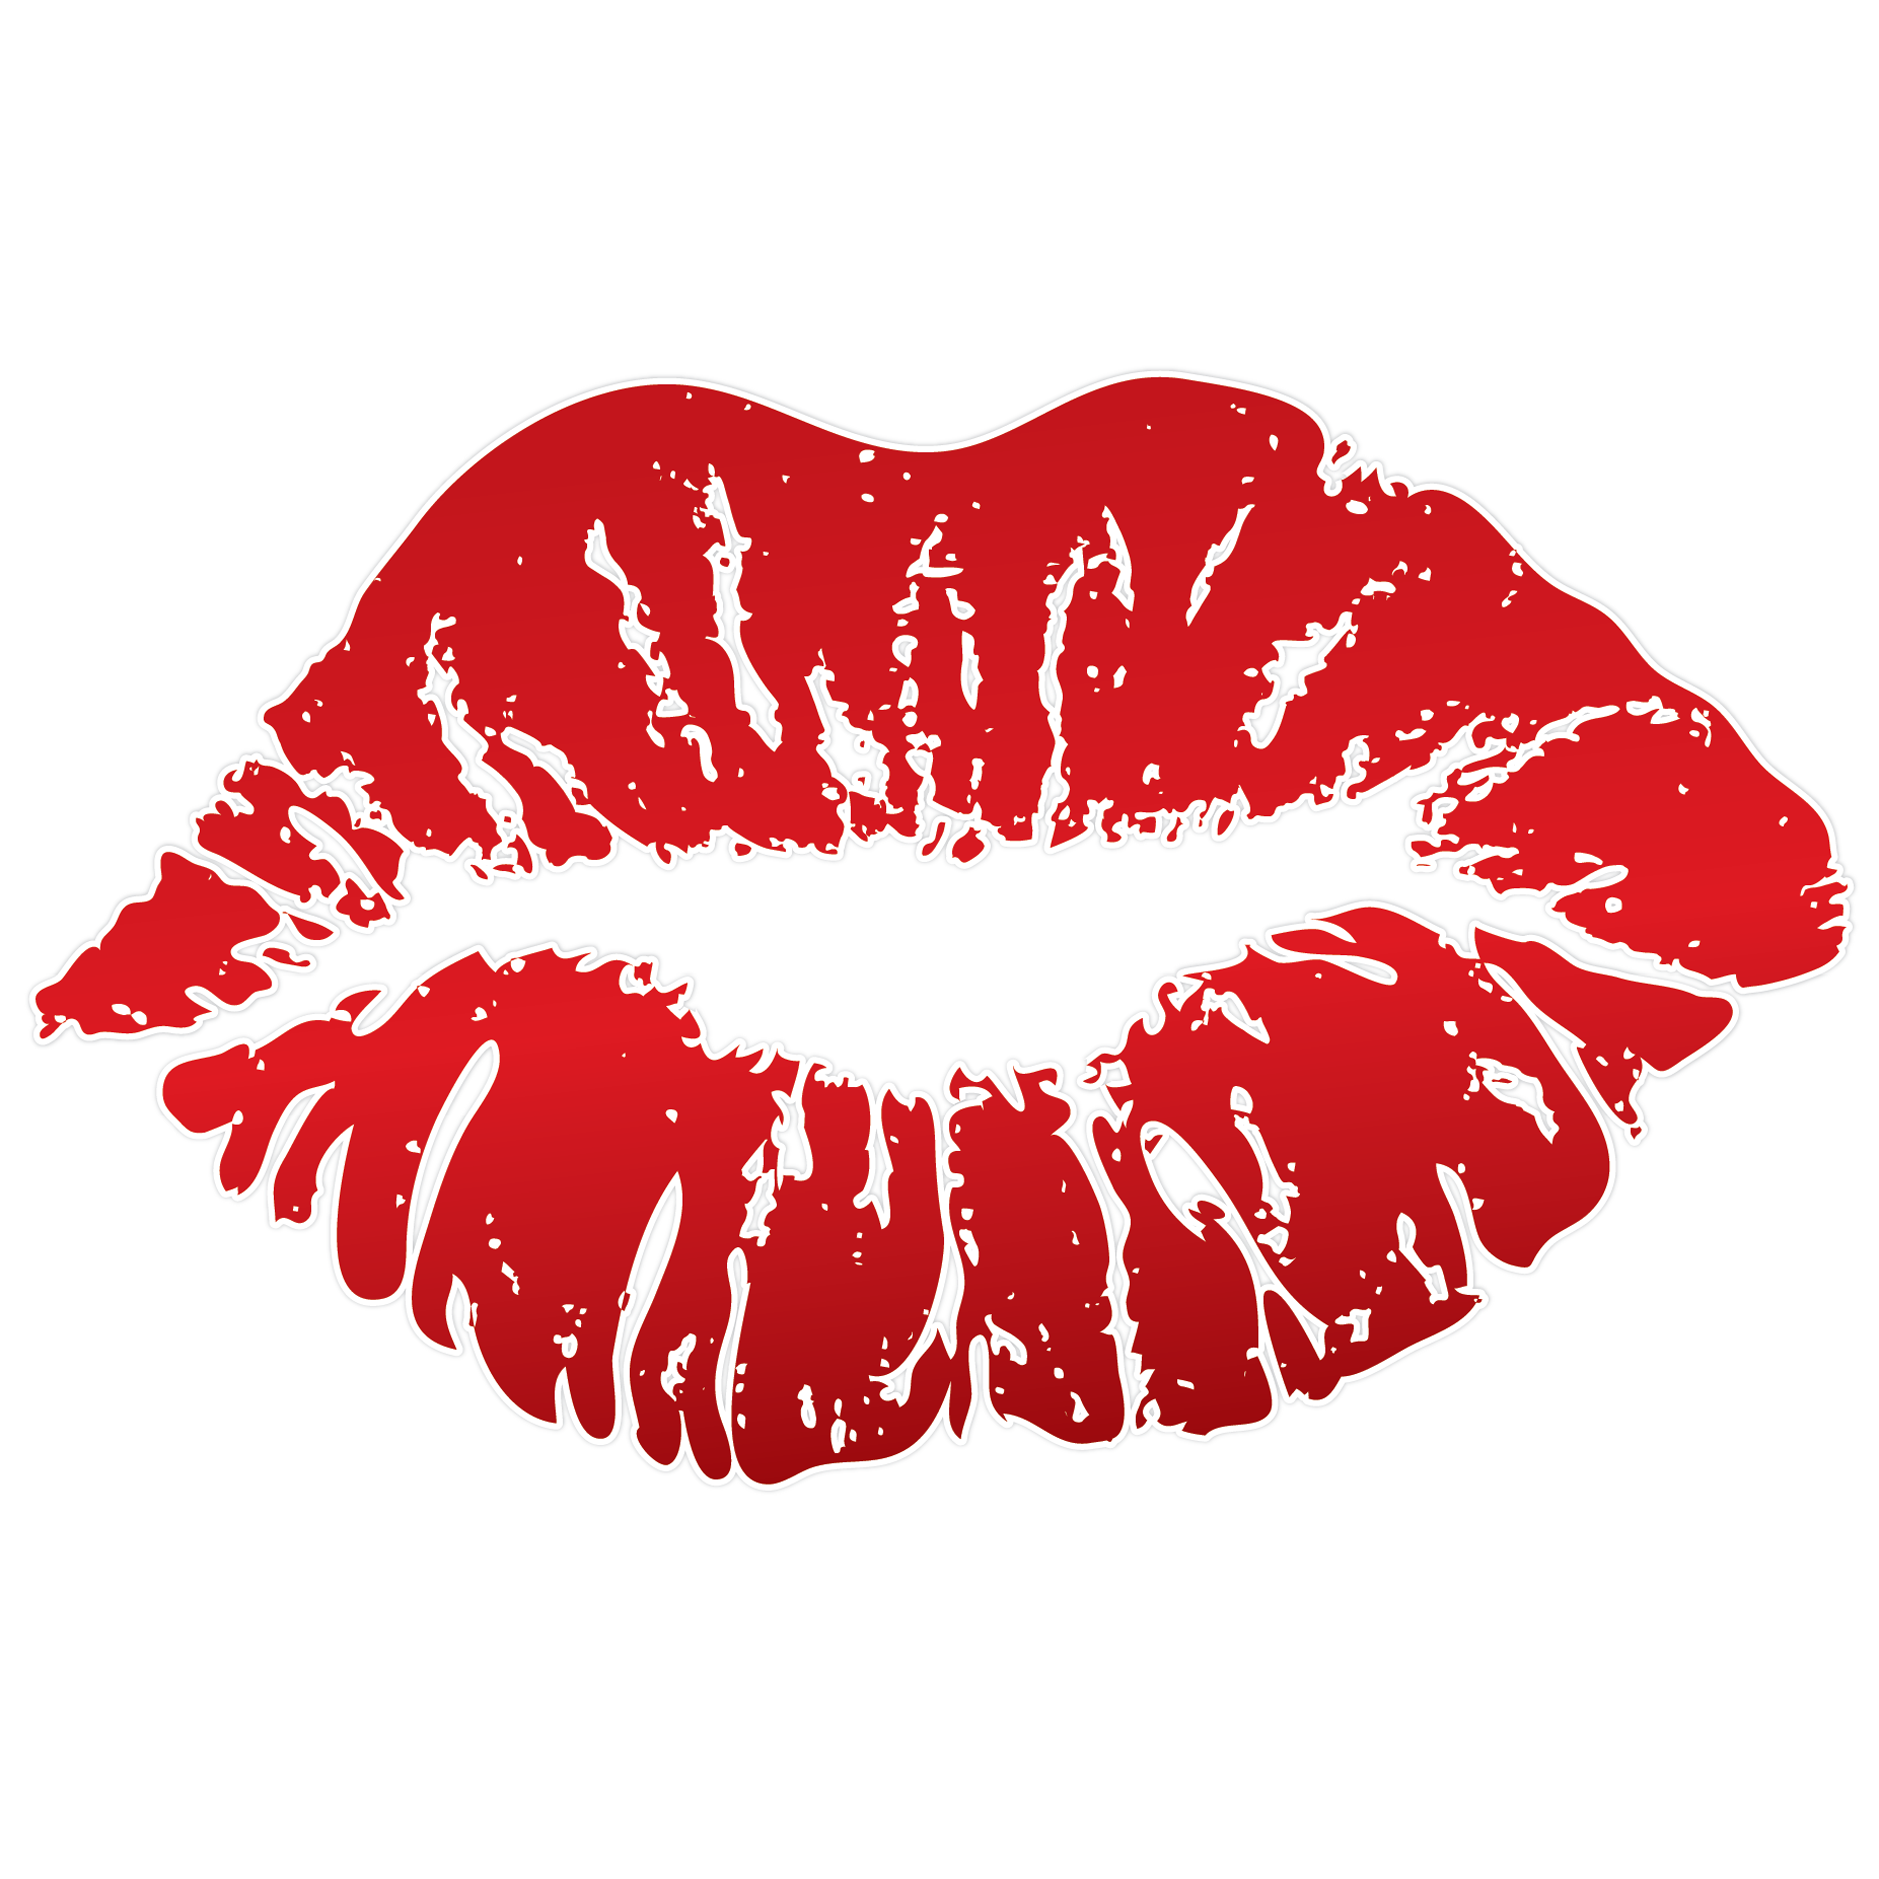 Kissing Lips Emoji Png 1879 1879 Red Lip Quotes How To Draw Braids Lip Logo